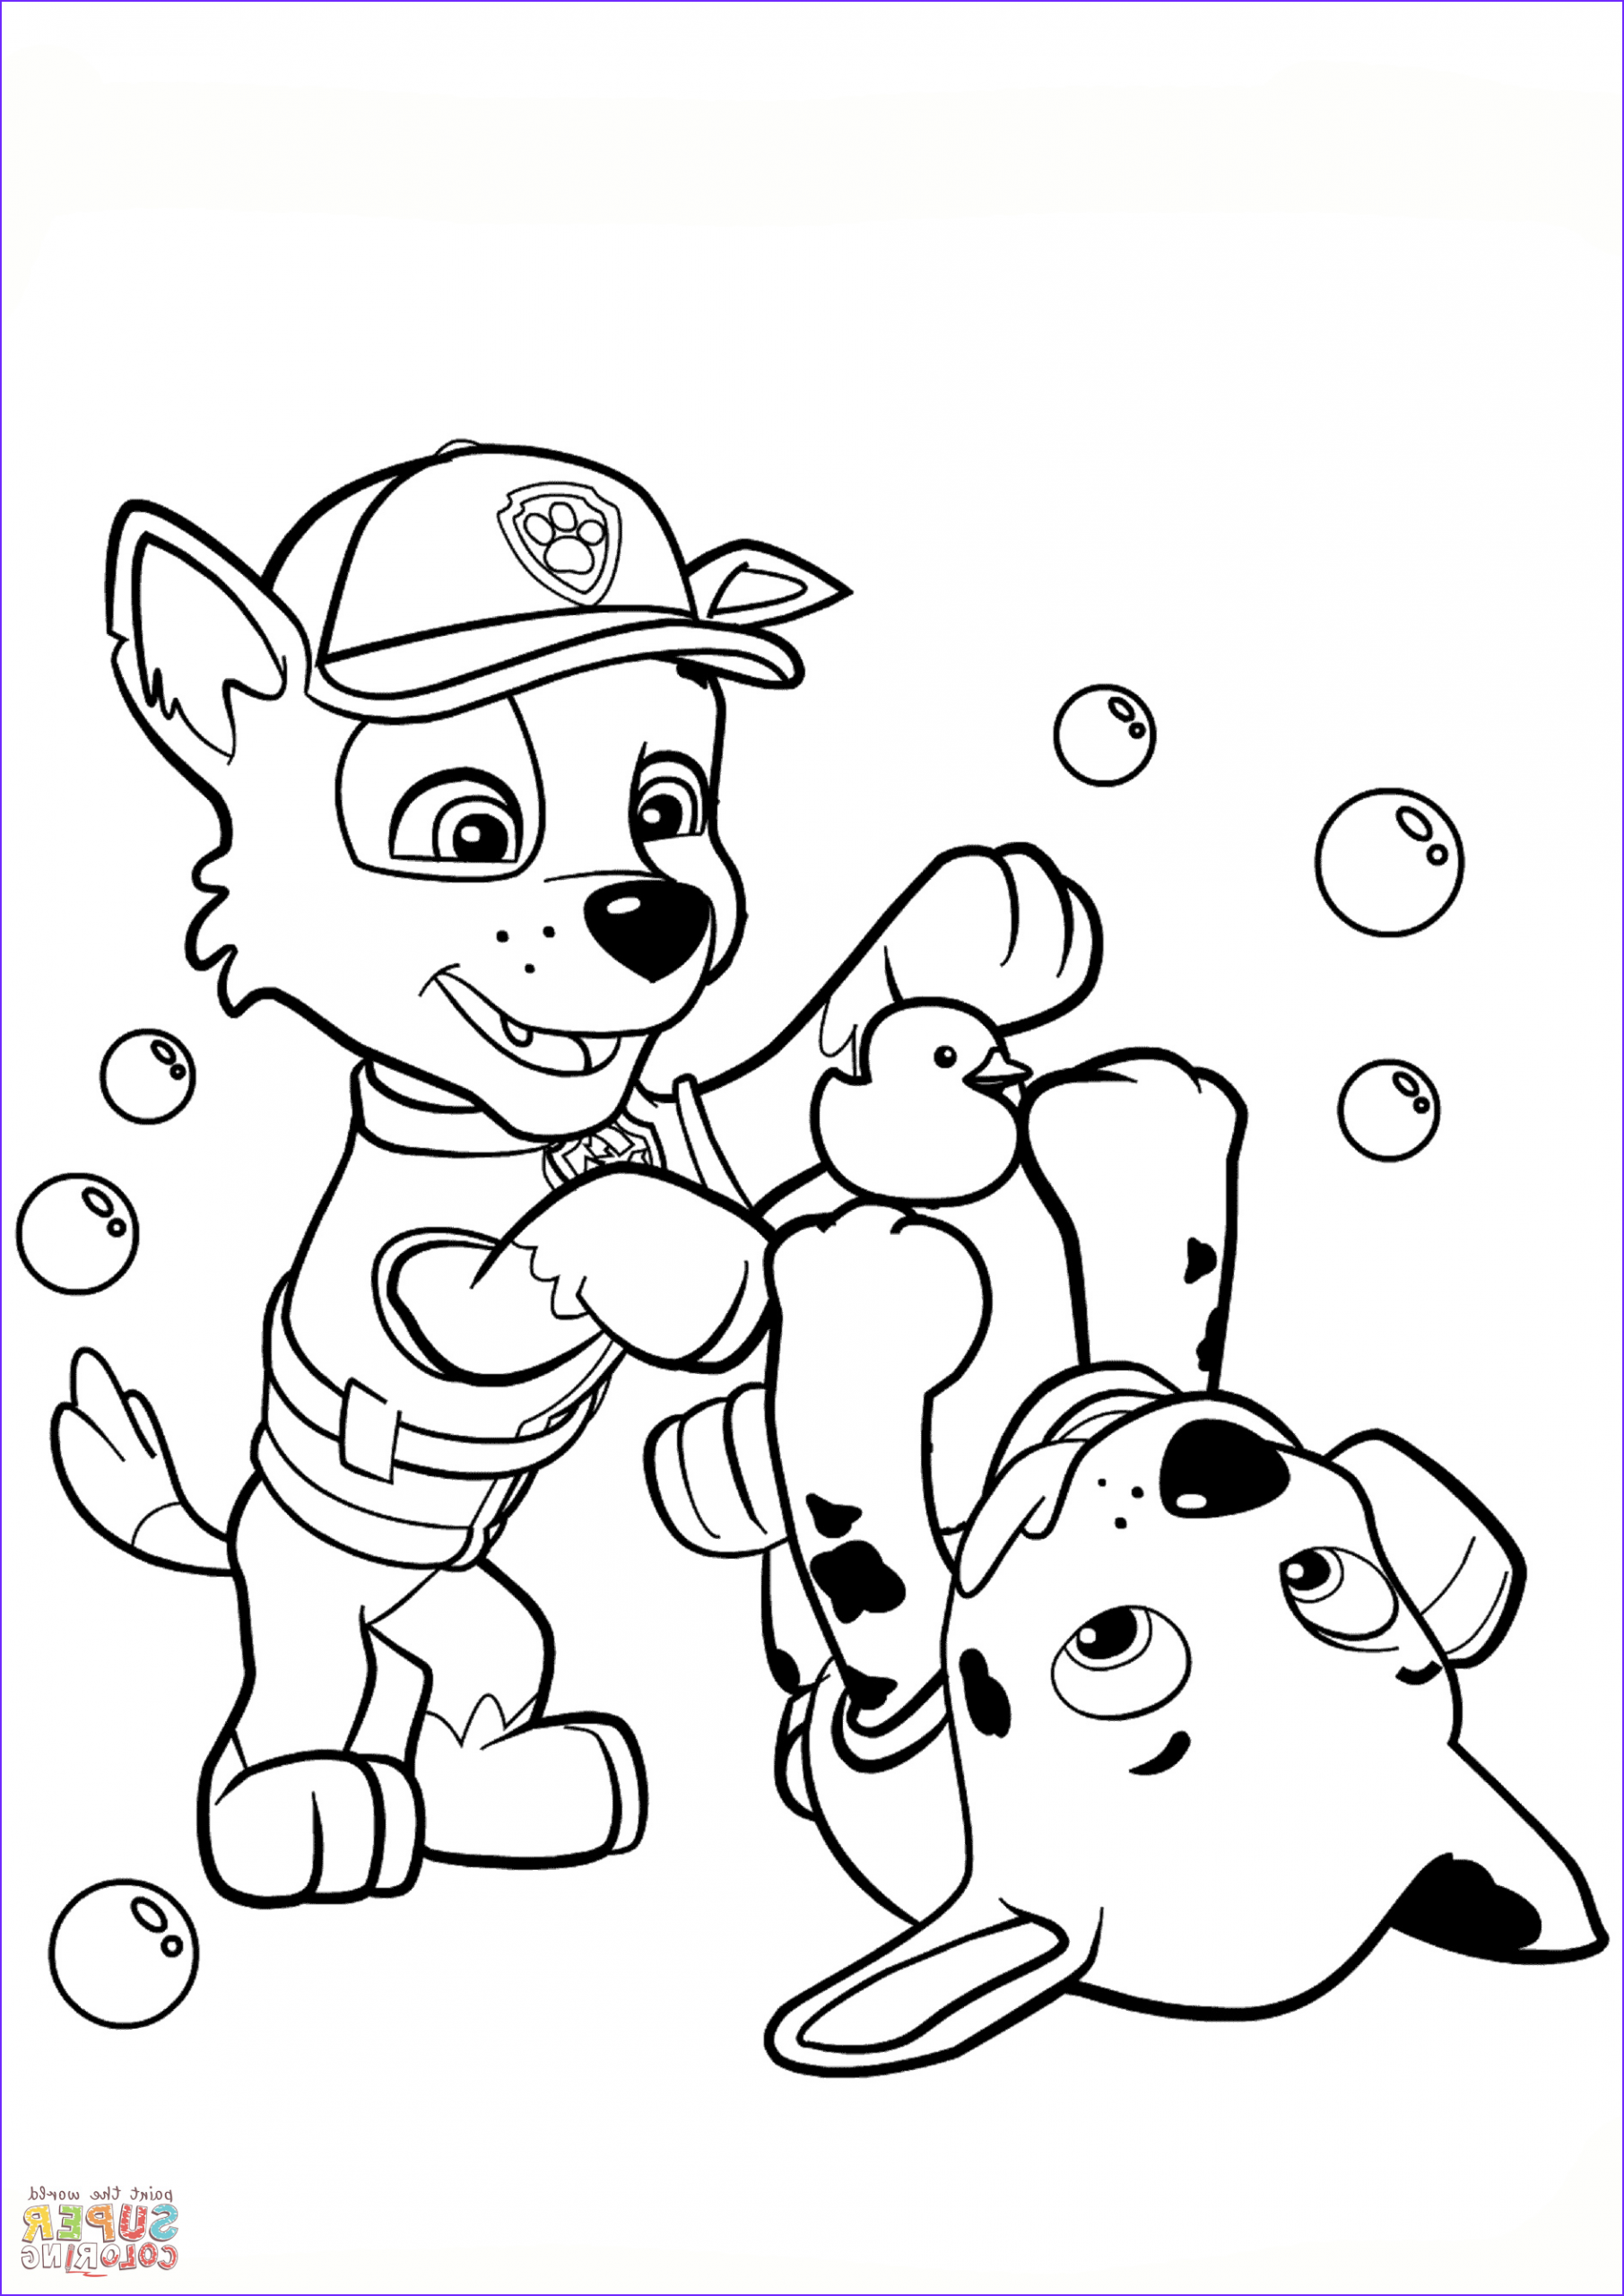 45 New Gallery Of Paw Patrol Coloring Book Paw Patrol Coloring Pages Paw Patrol Coloring Cartoon Coloring Pages